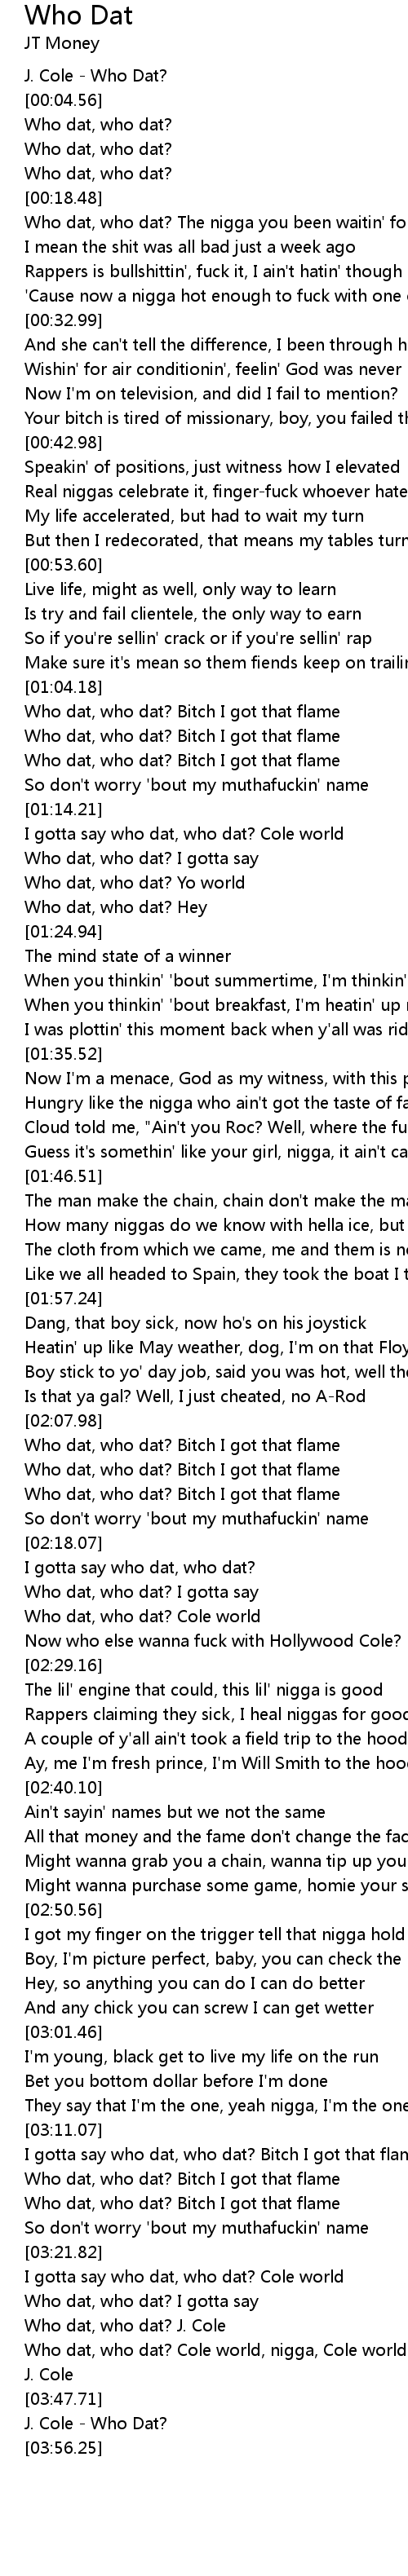 lyrics for who the fuck is dat